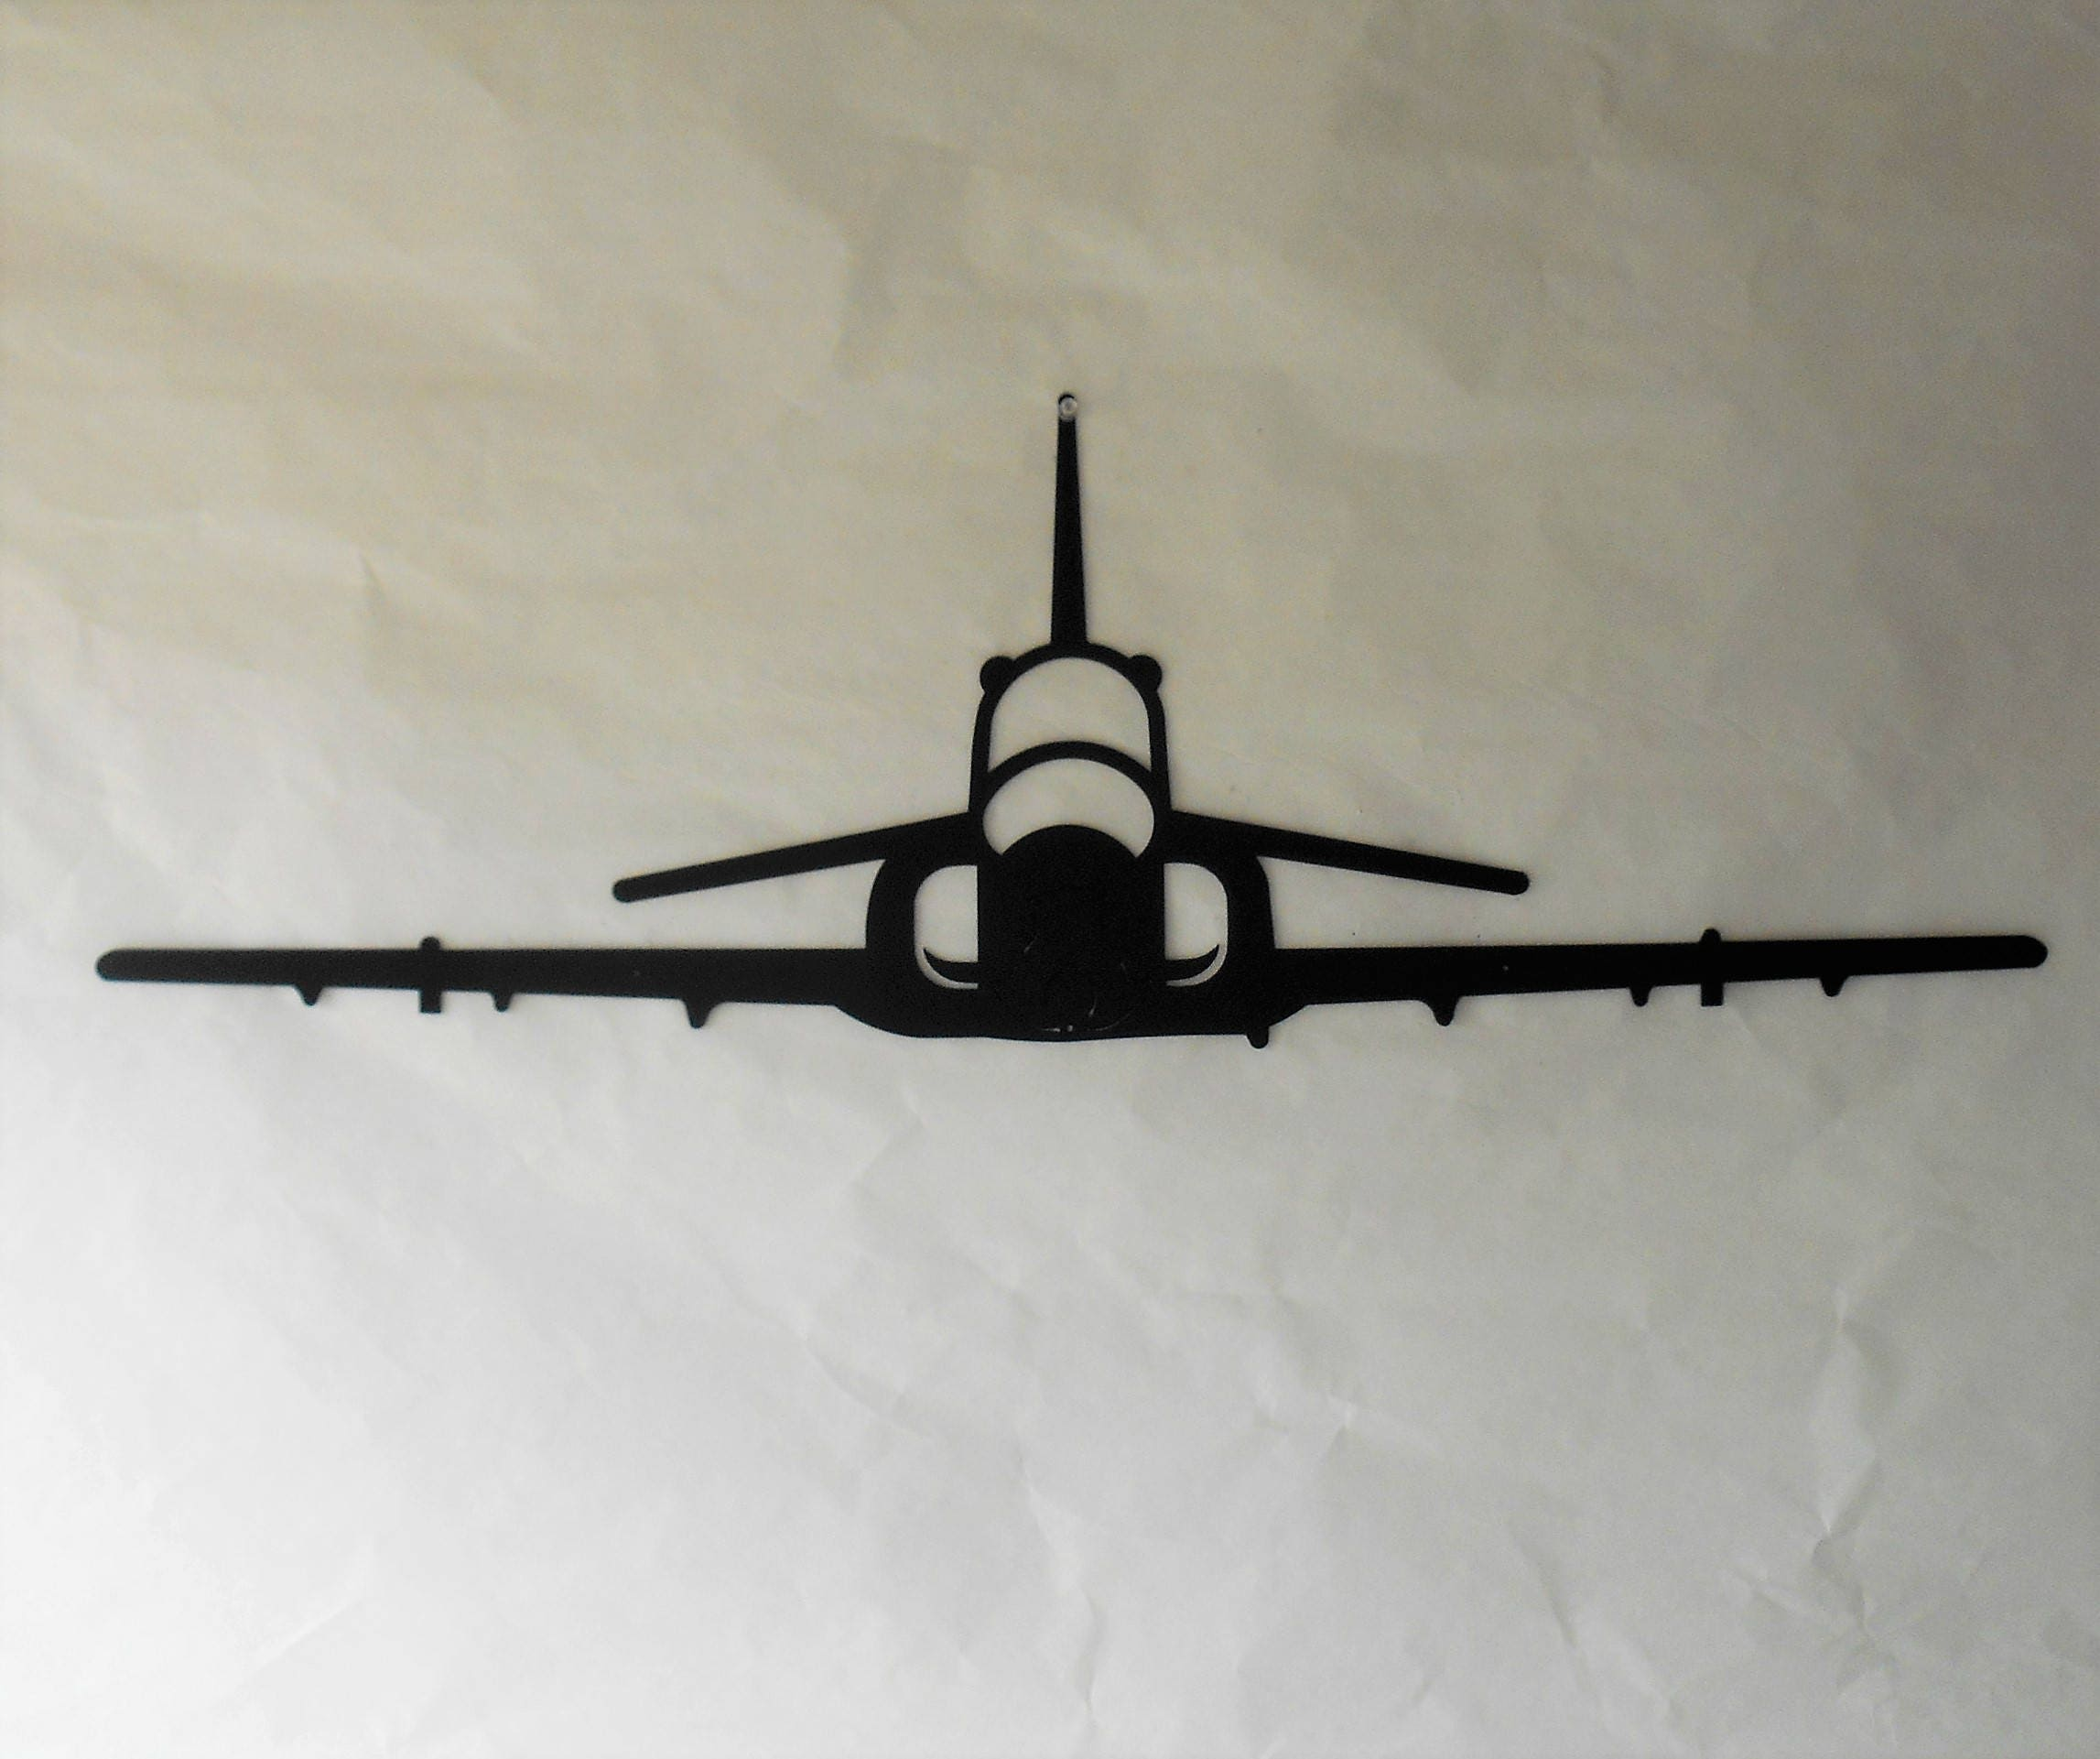 aviation decor just 4 the art of it